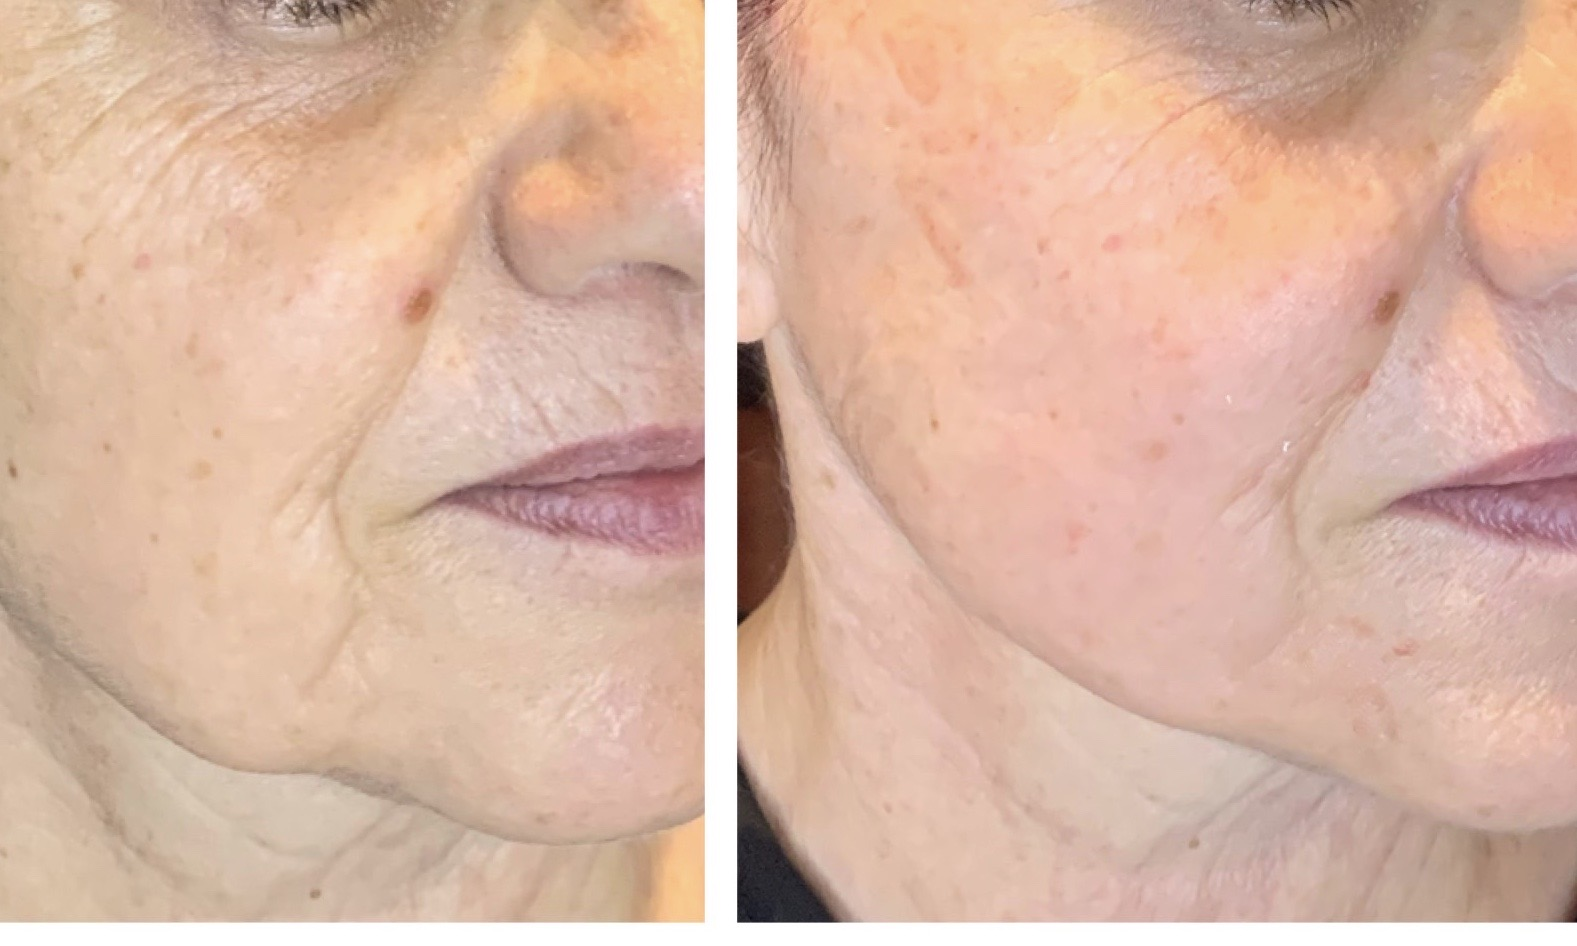 After PRP treatment, skin is healthier, firmer, & fine lines are smoothed out.